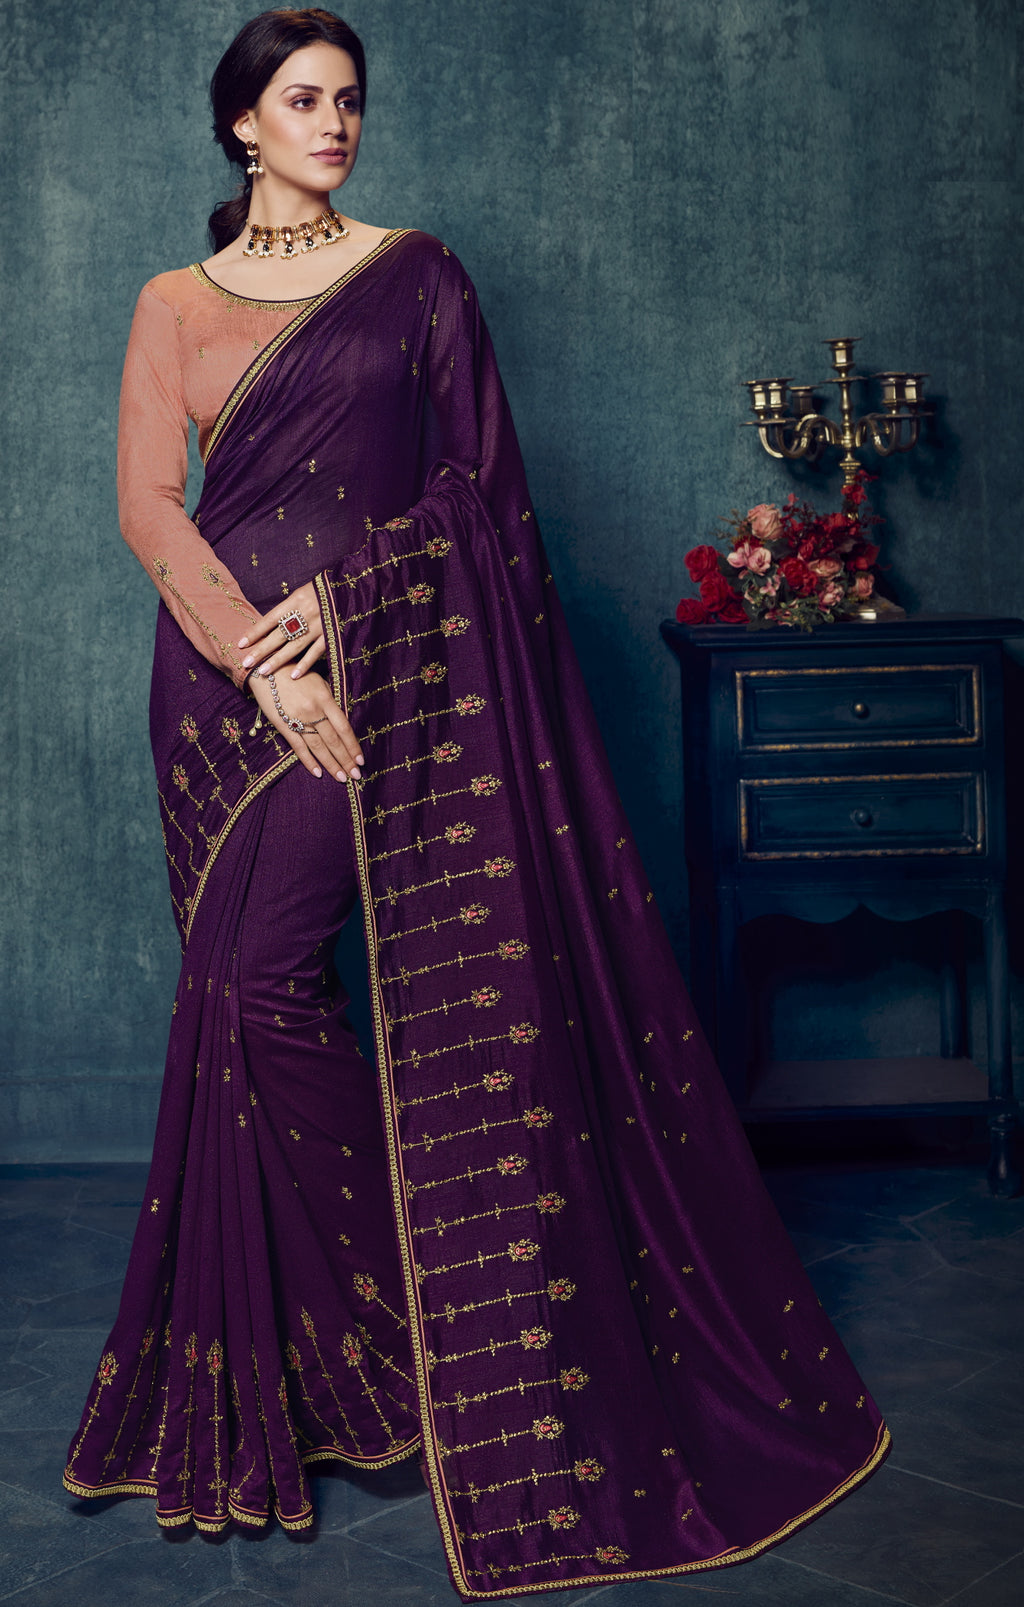 Purple Color Dola Silk Exquisite Office Party Sarees NYF-6191